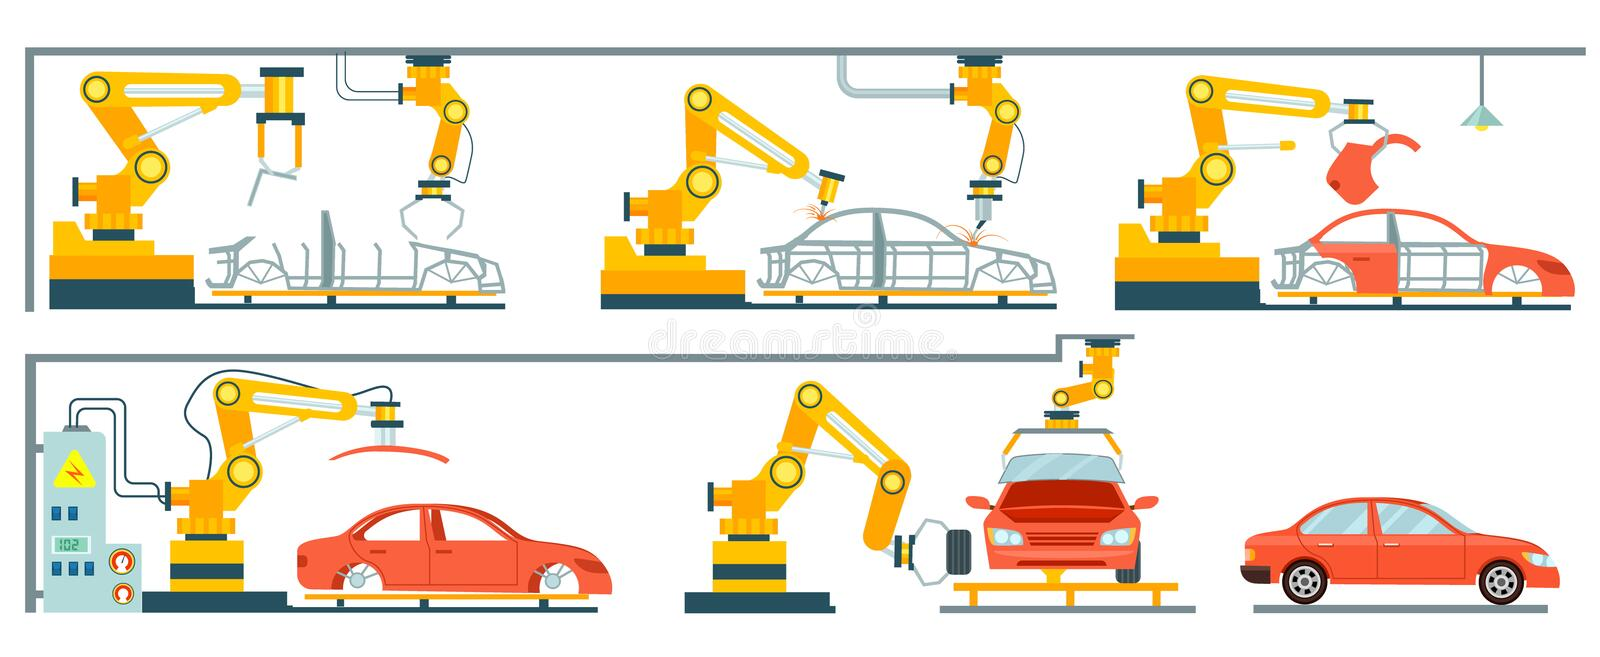 Car Manufacturing Process Video Free Download